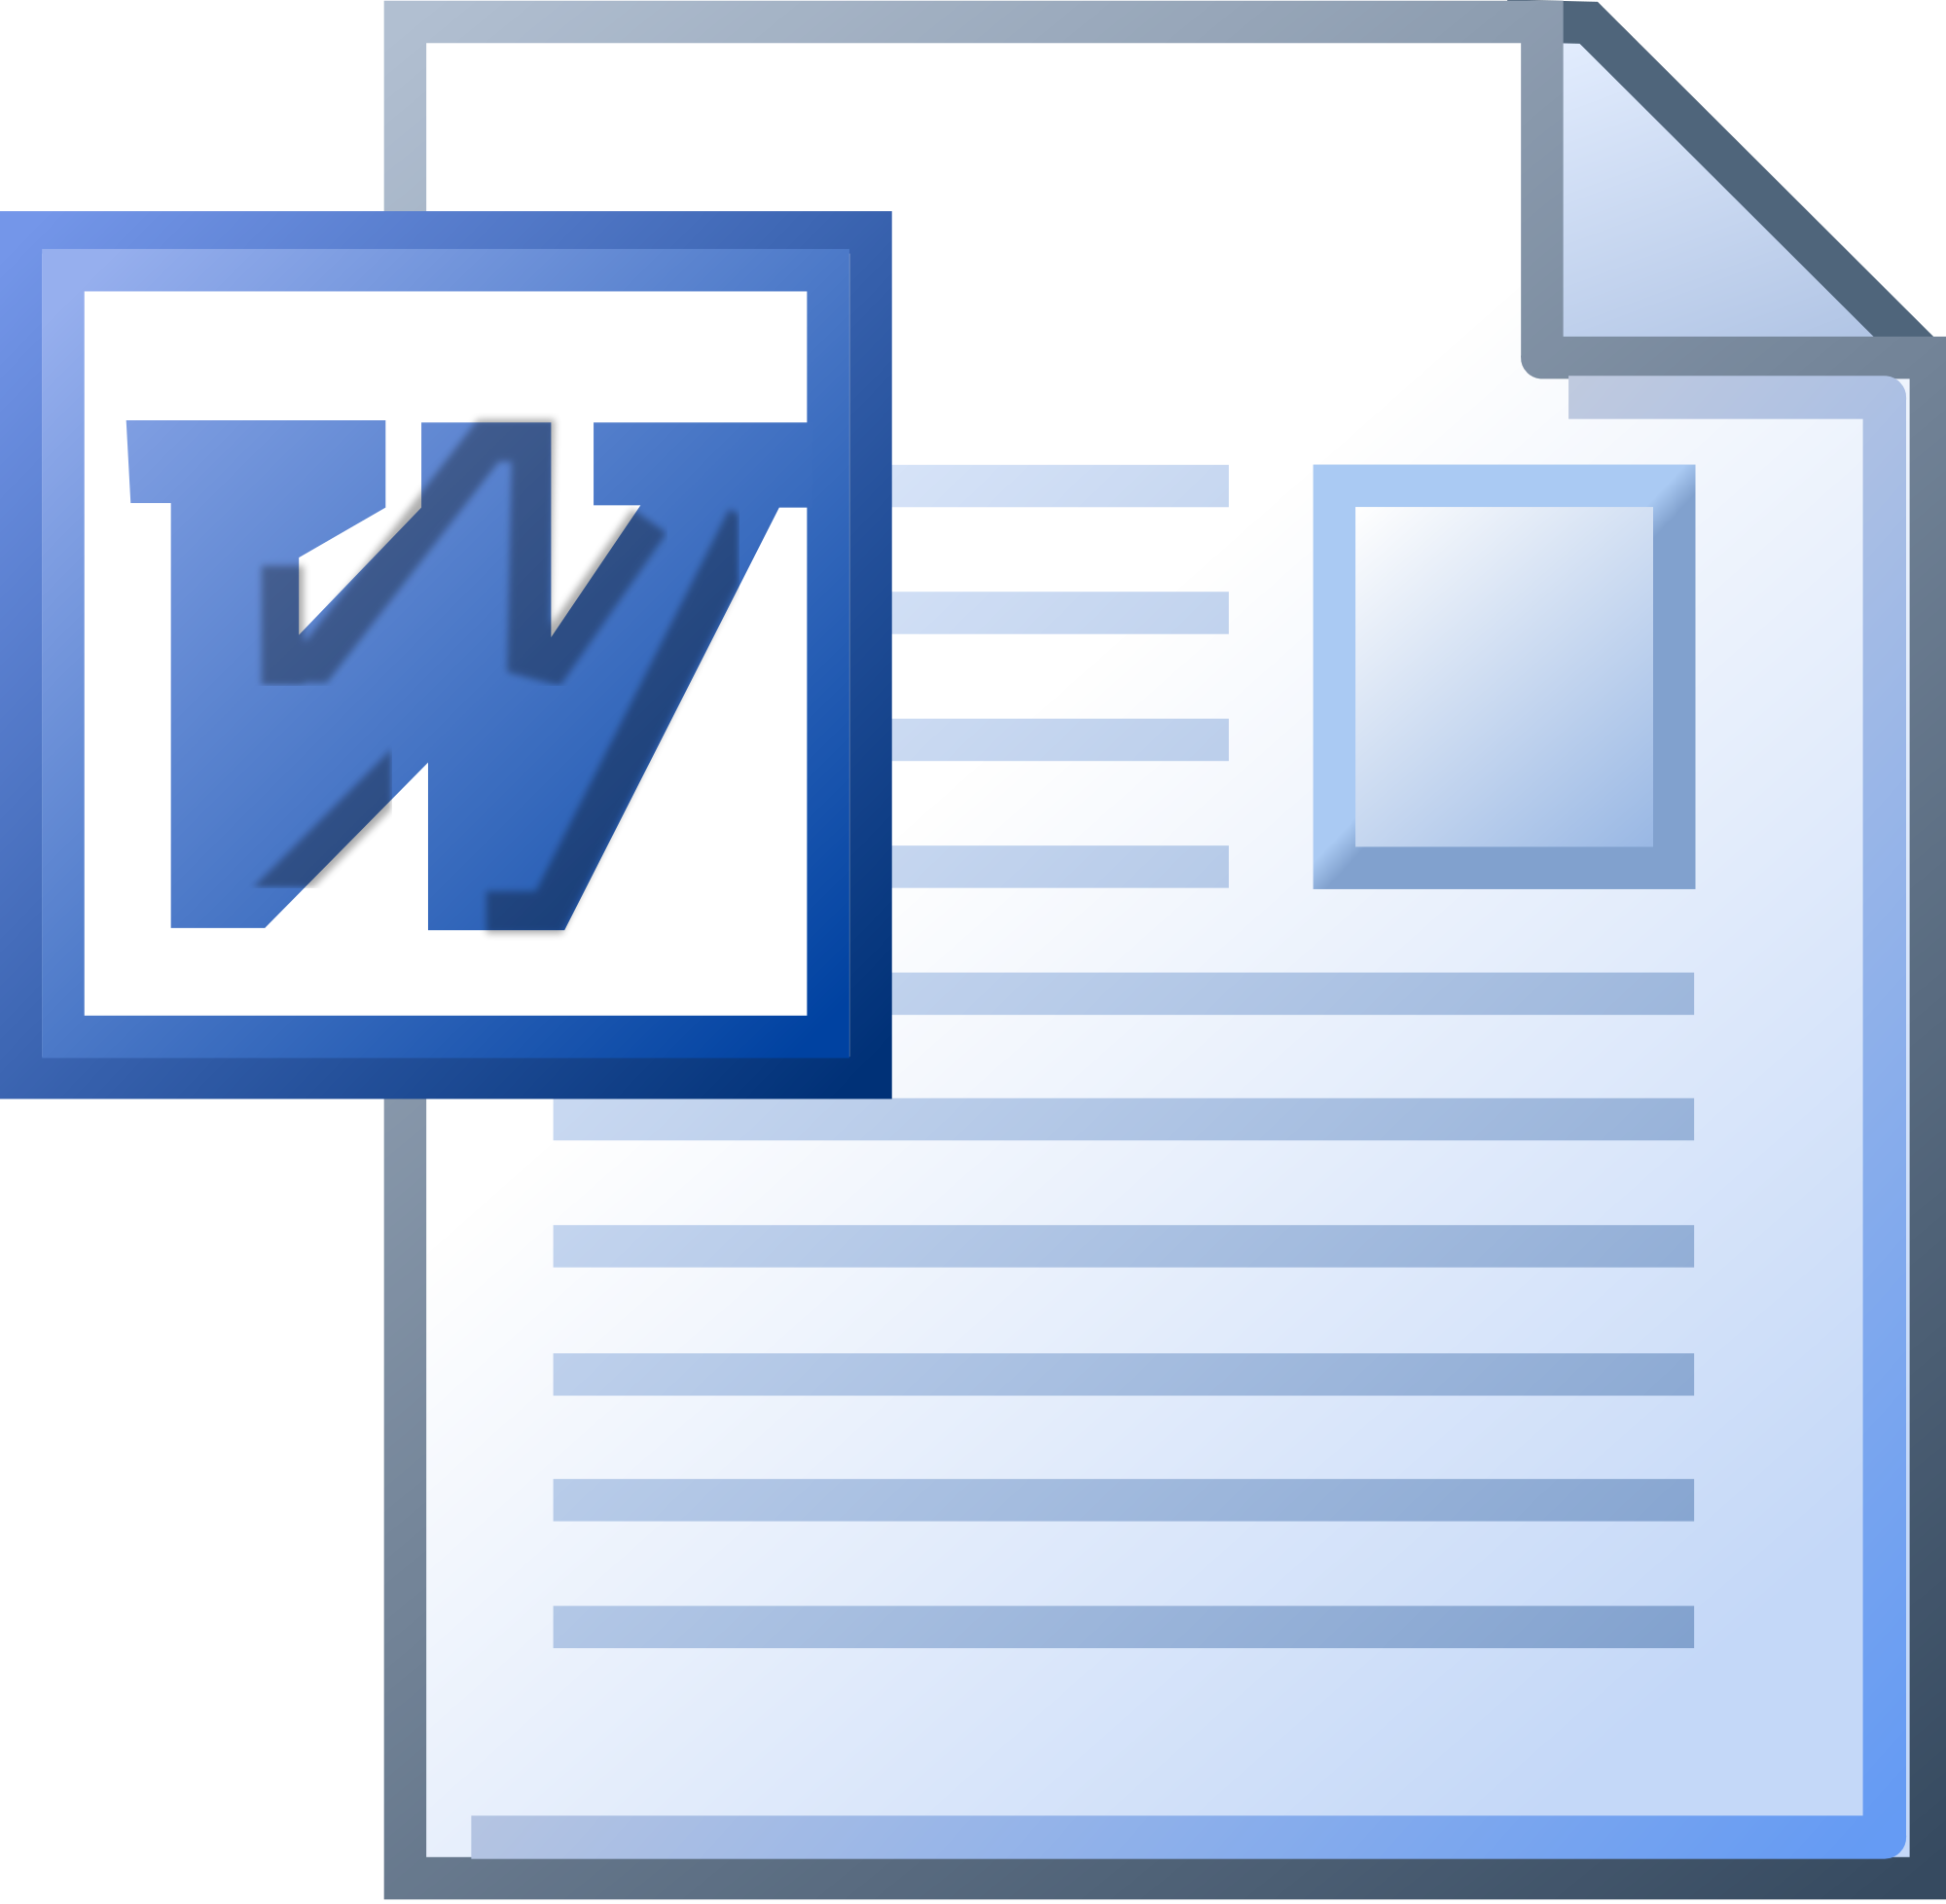 Becoming confident with MS Word - Essentials for academic writing (S3.03)